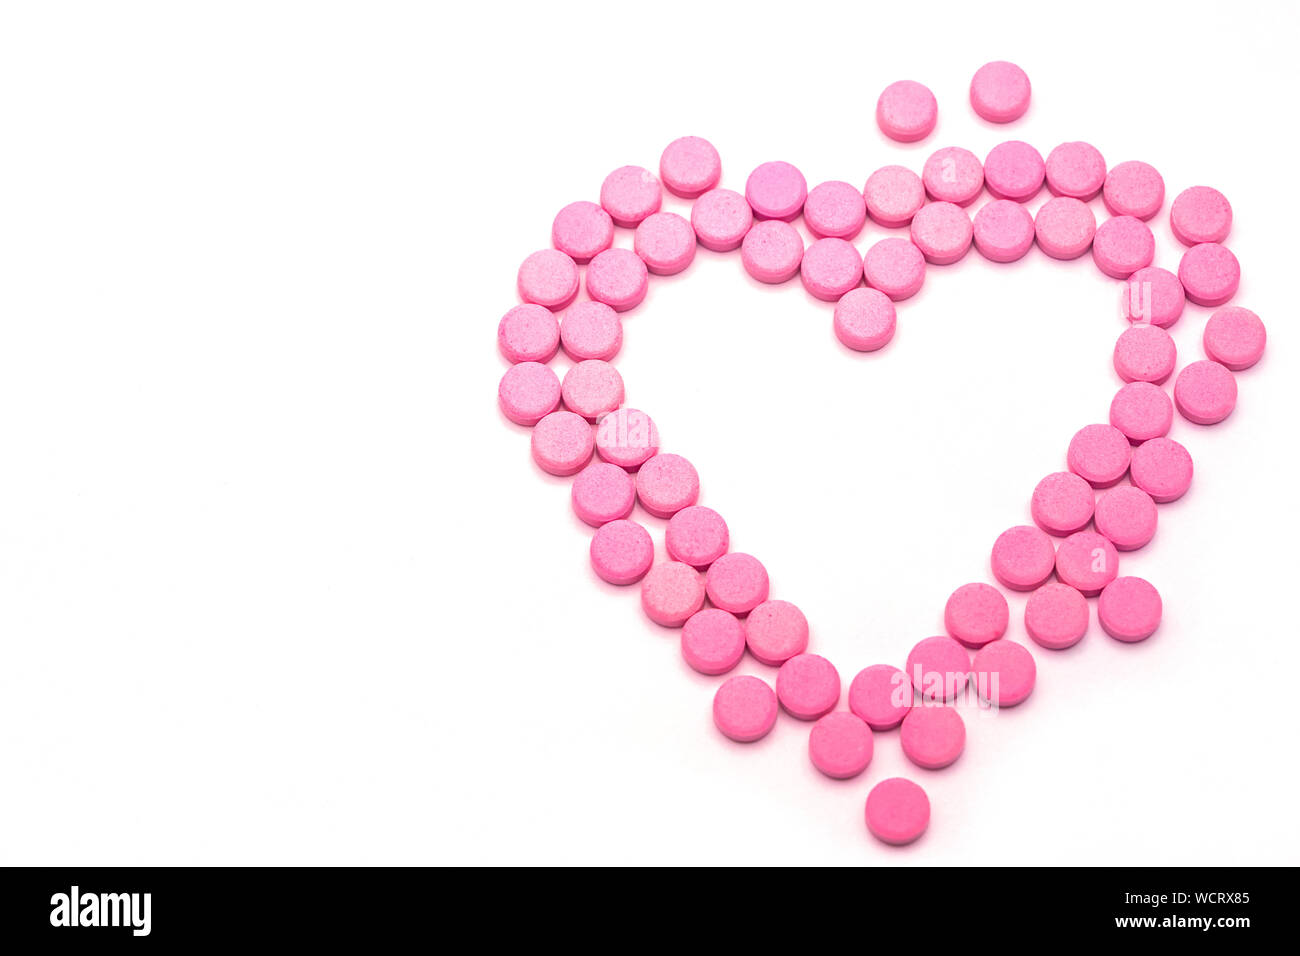 Ecstasy Tablets Stock Photos & Ecstasy Tablets Stock Images